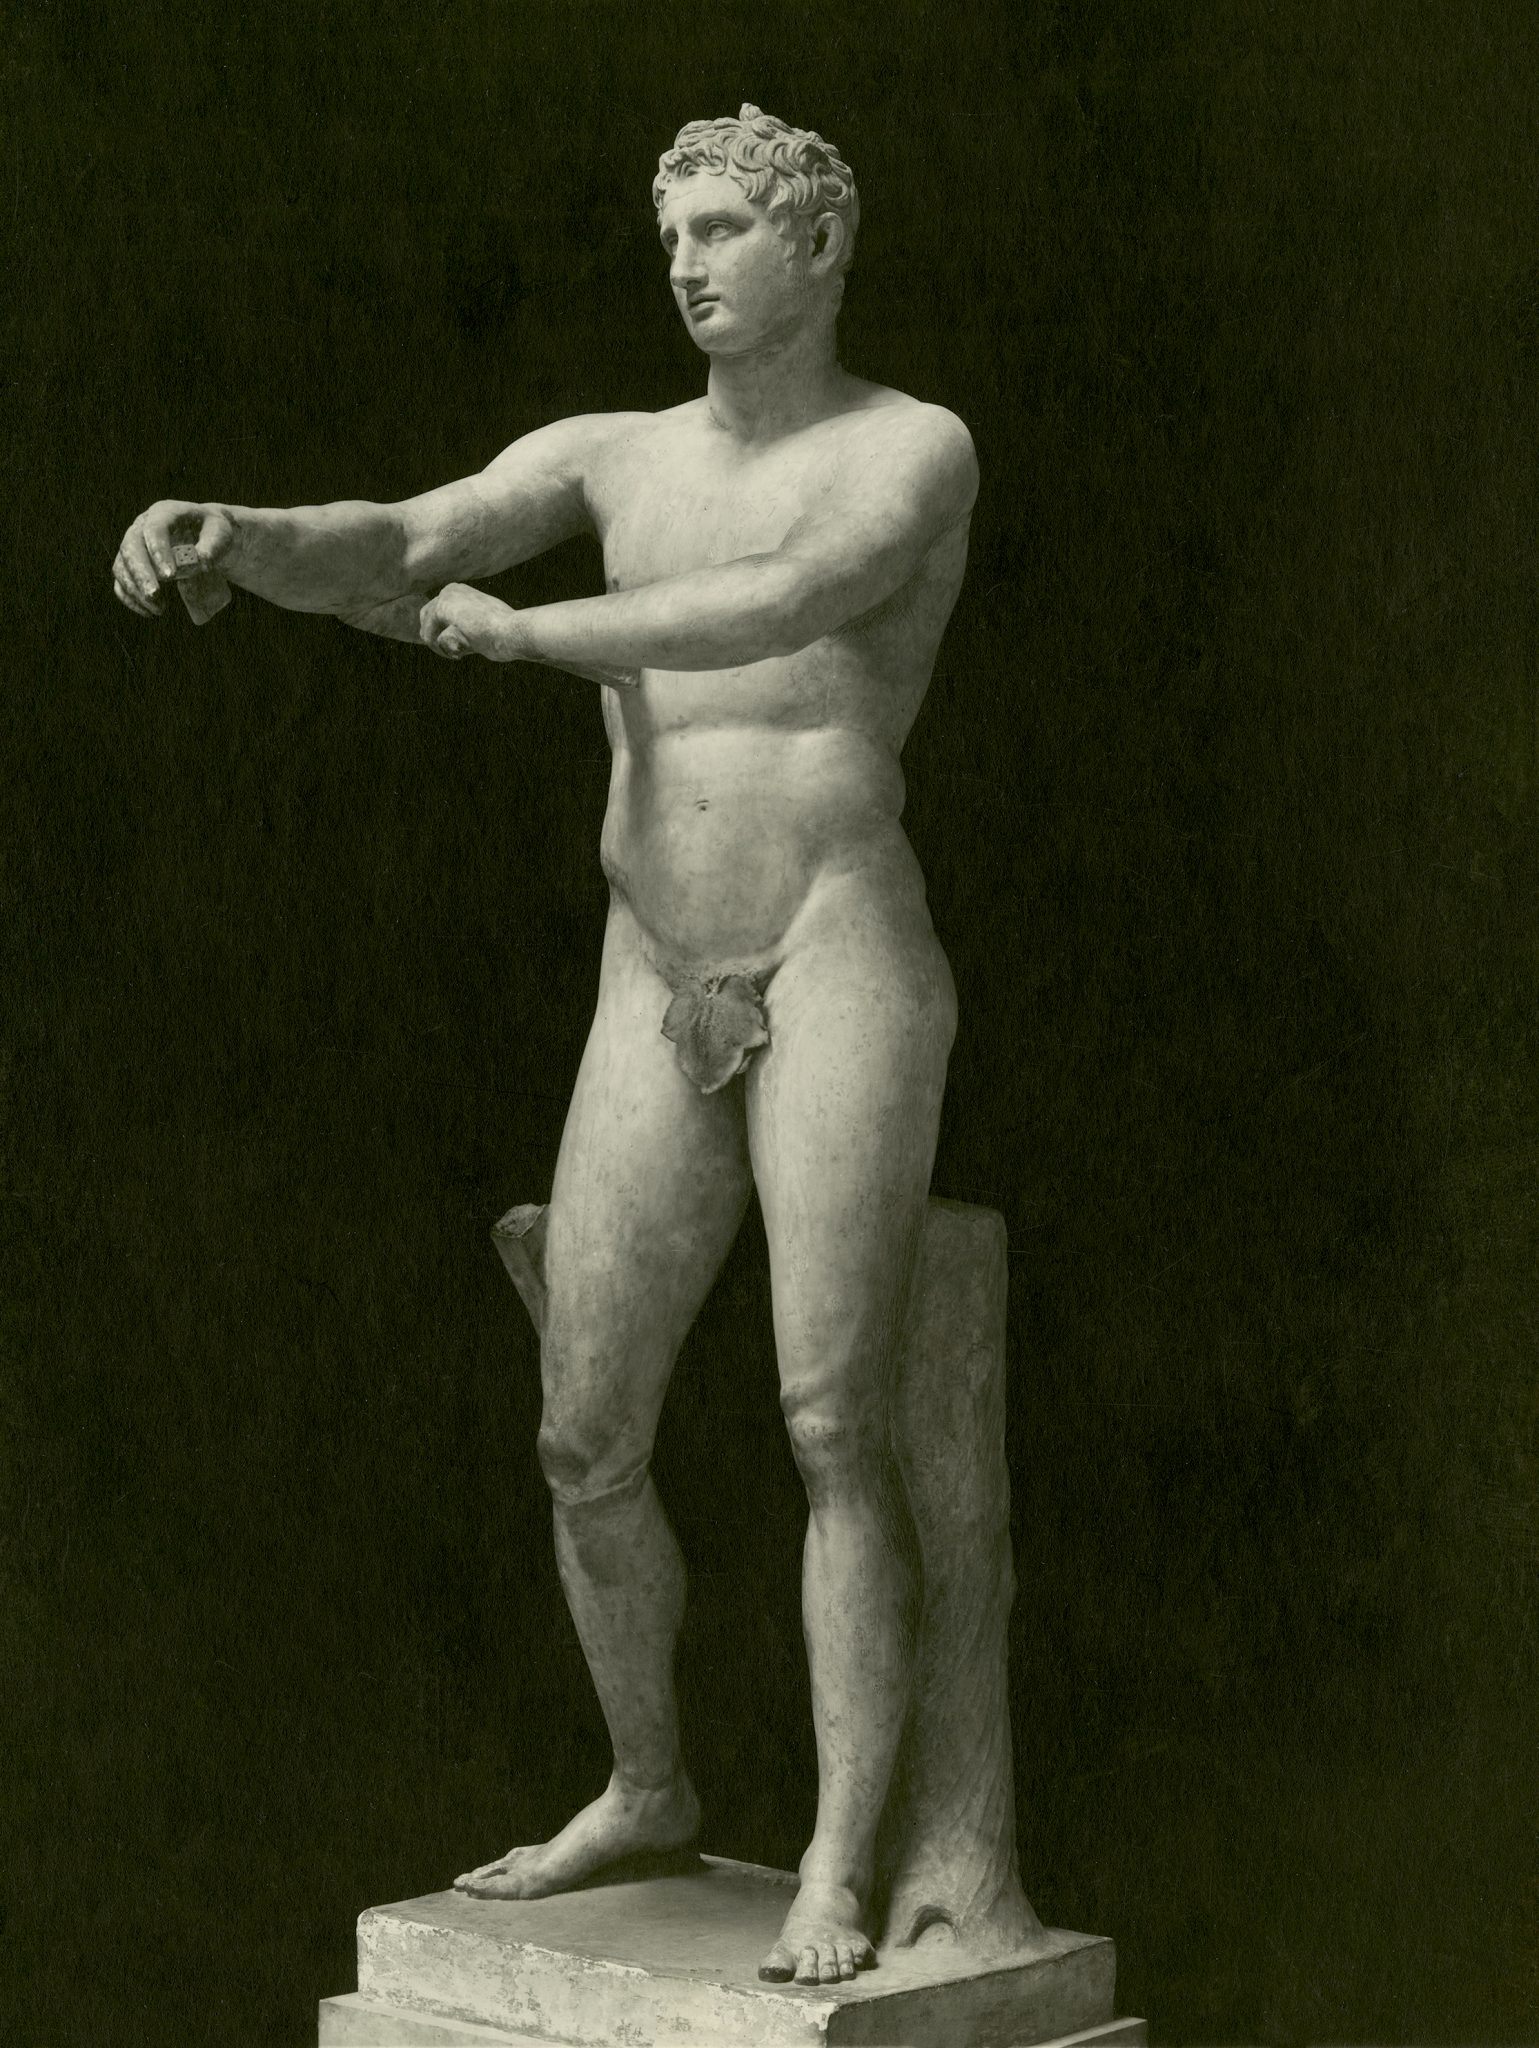 <p><i>The Apoxymenos.</i></p><p>Roman copy after bronze original of c.340-310 BCE,</p><p>attributed to Lysippos. Marble.</p><p>Chiaramonti Museum, Braccio Nuovo, Vatican City.</p>